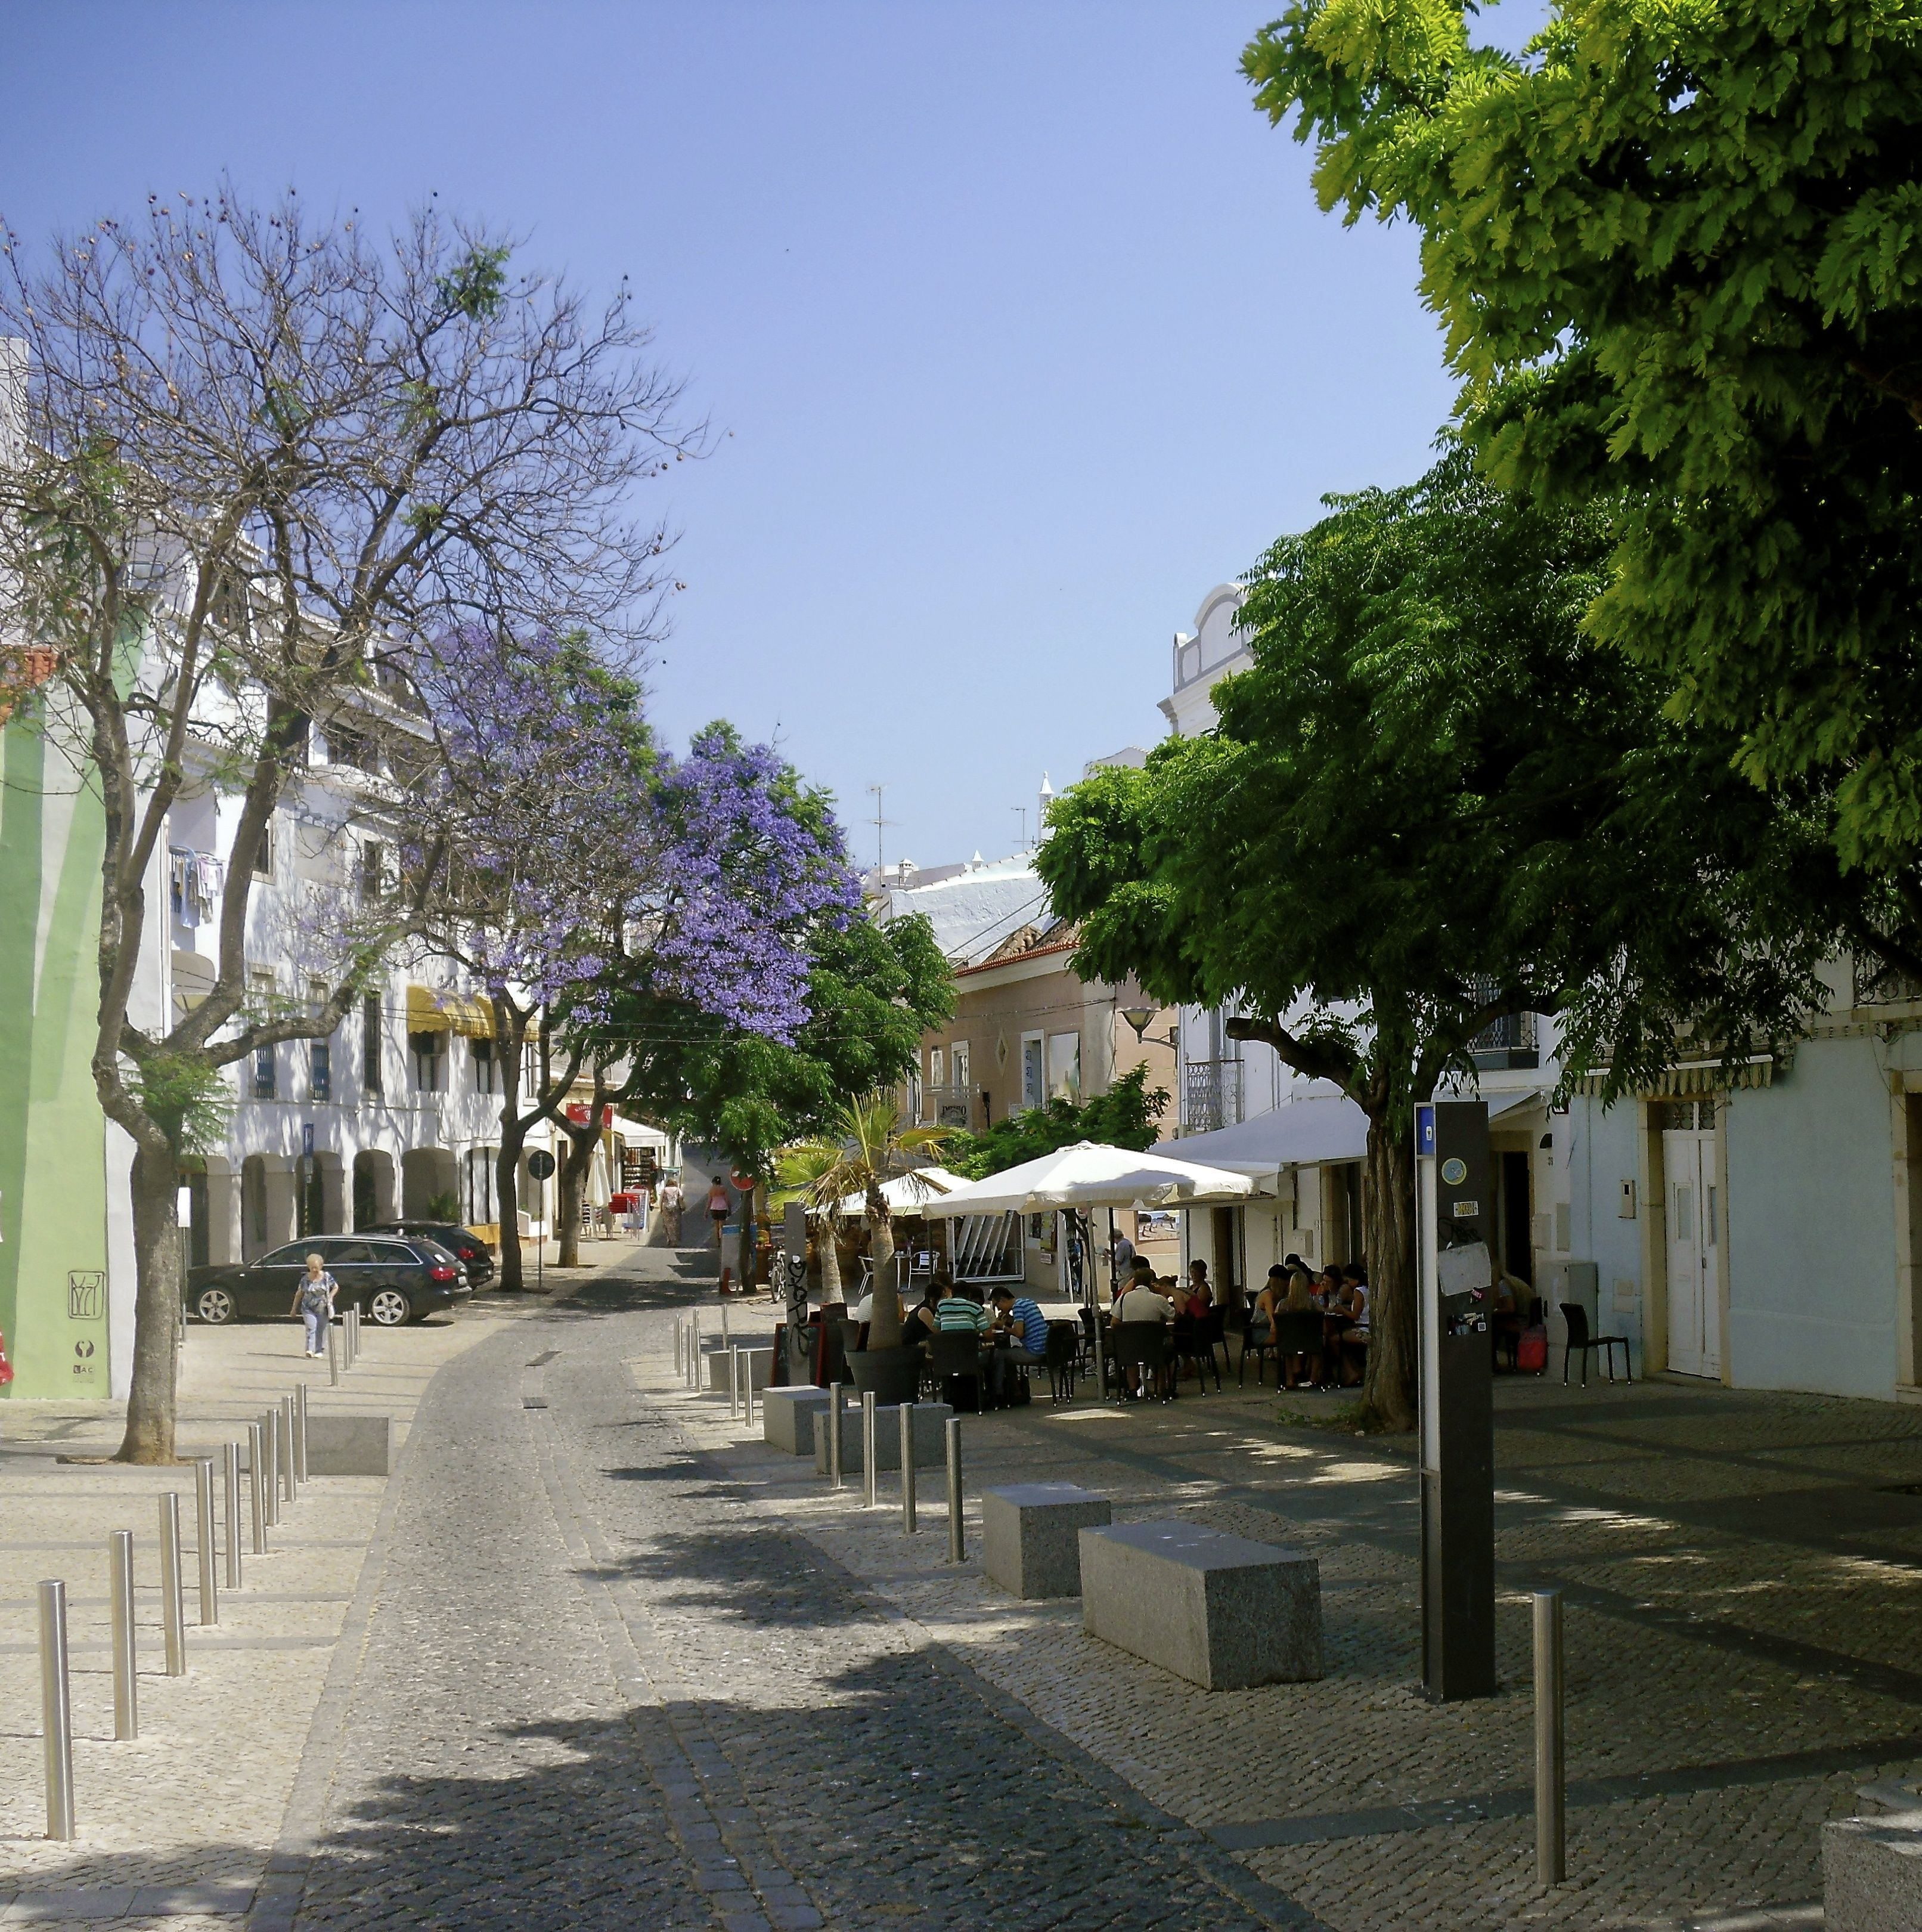 The Cobbled Streets In Lagos Portugal Discover All The Different Street Restaurants Serving Up Wonderful Local Cu Lagos Portugal Amazing Destinations Lagos